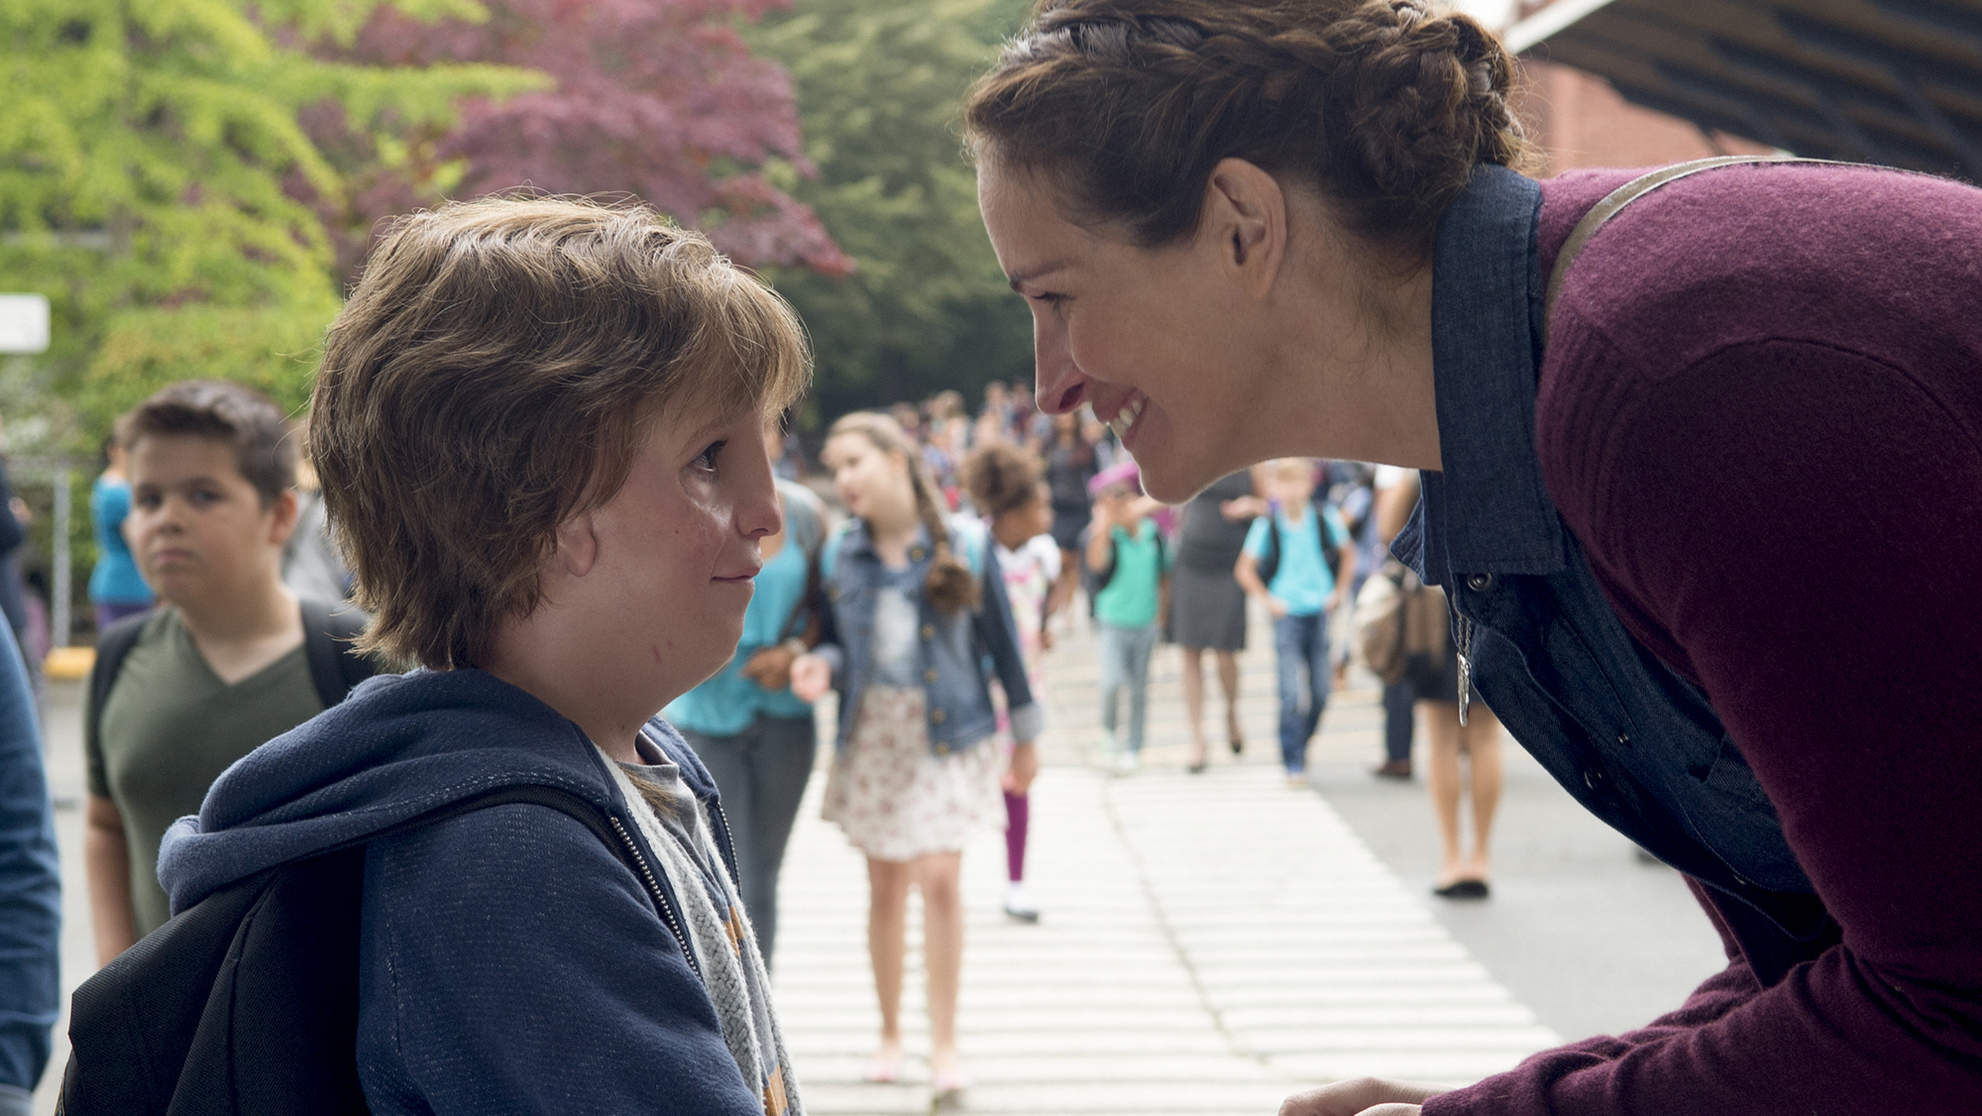 wonder the movie treacher collins syndrom julia roberts